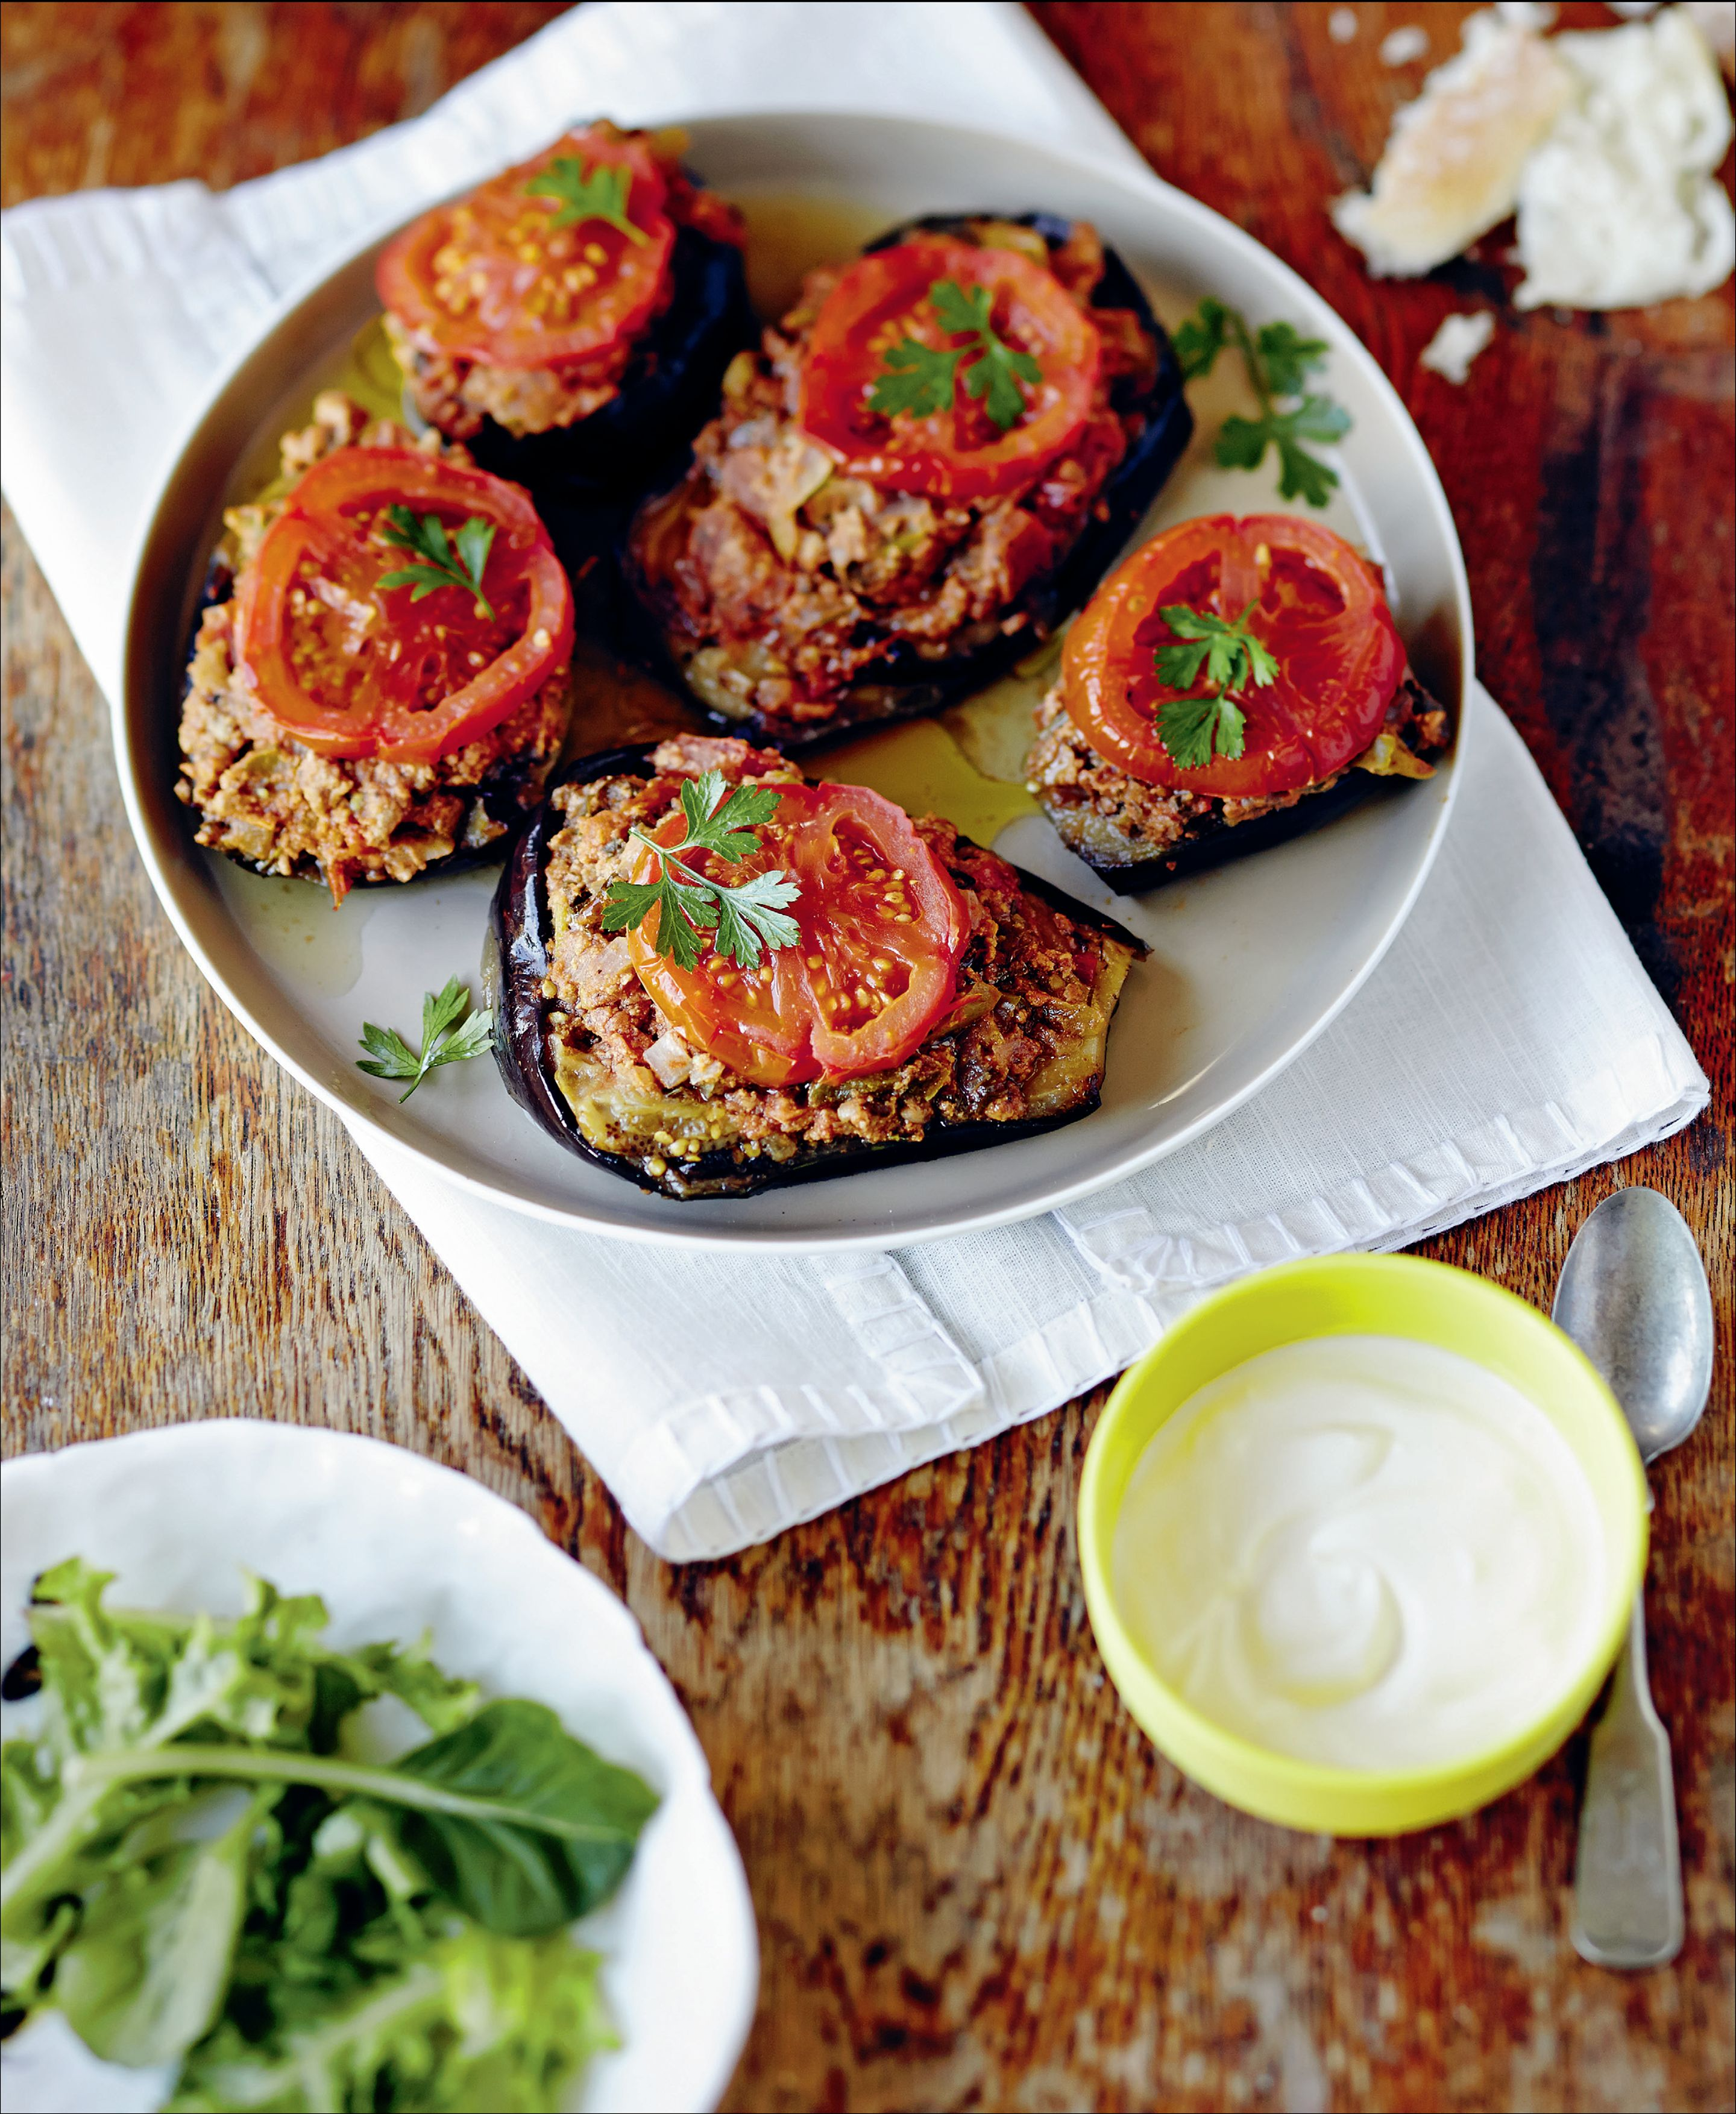 'Split belly' (stuffed eggplant with lamb or beef)